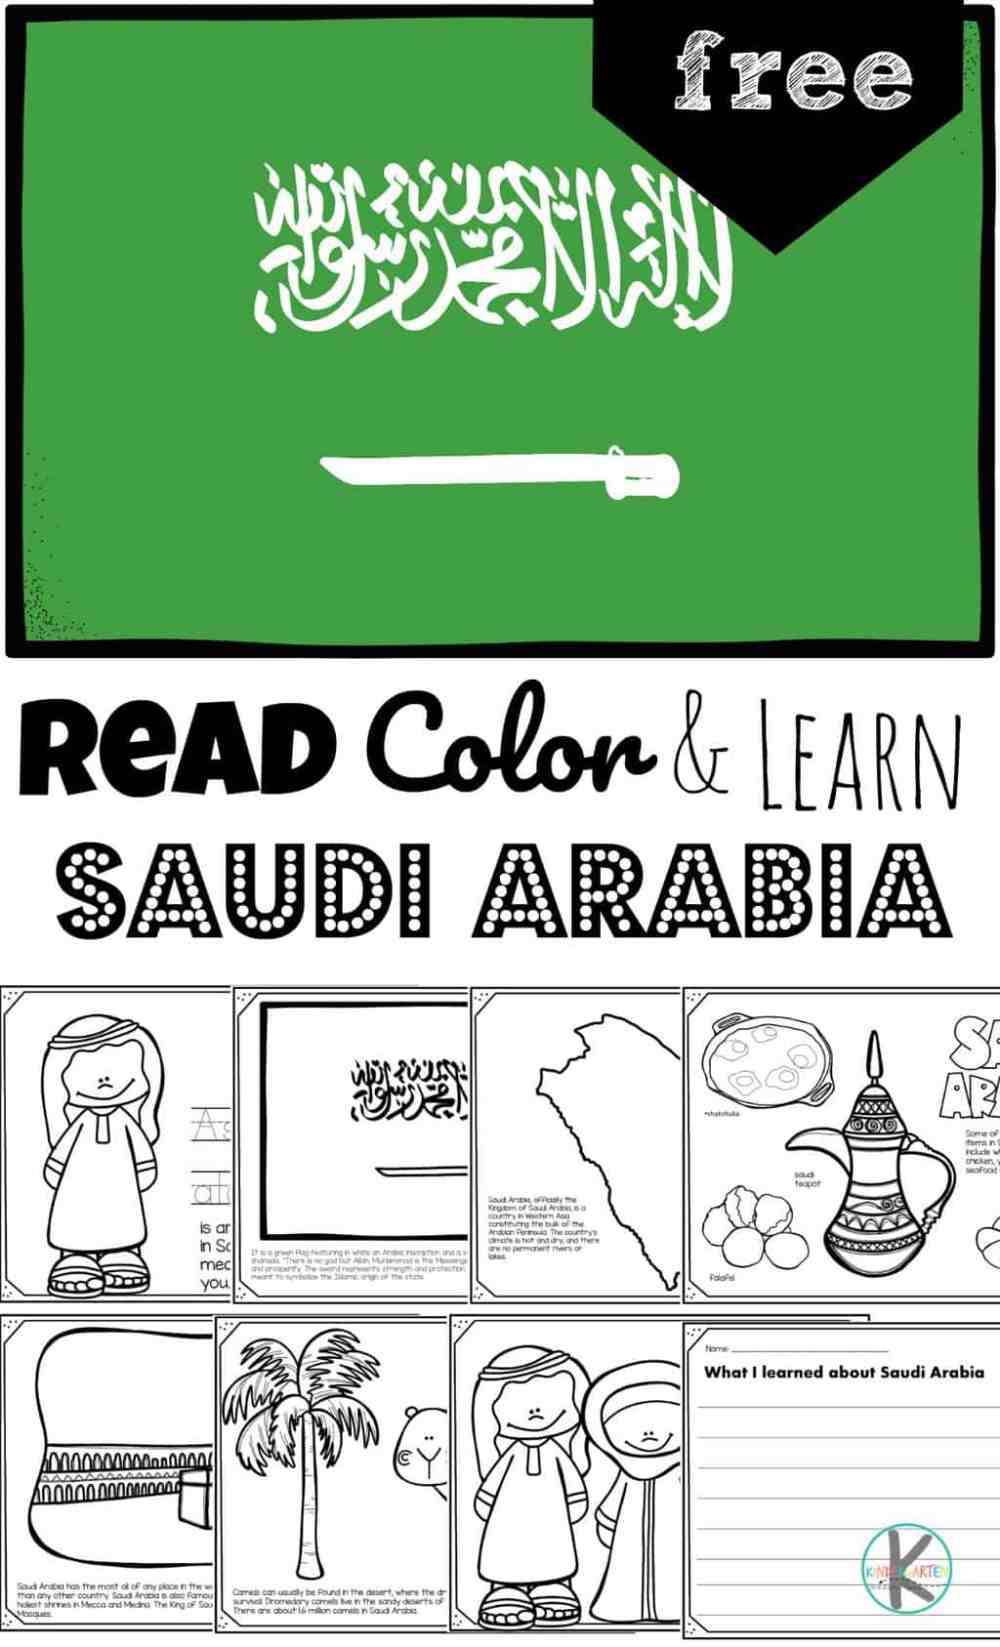 medium resolution of FREE Read Color and Learn about SAUDI ARABIA